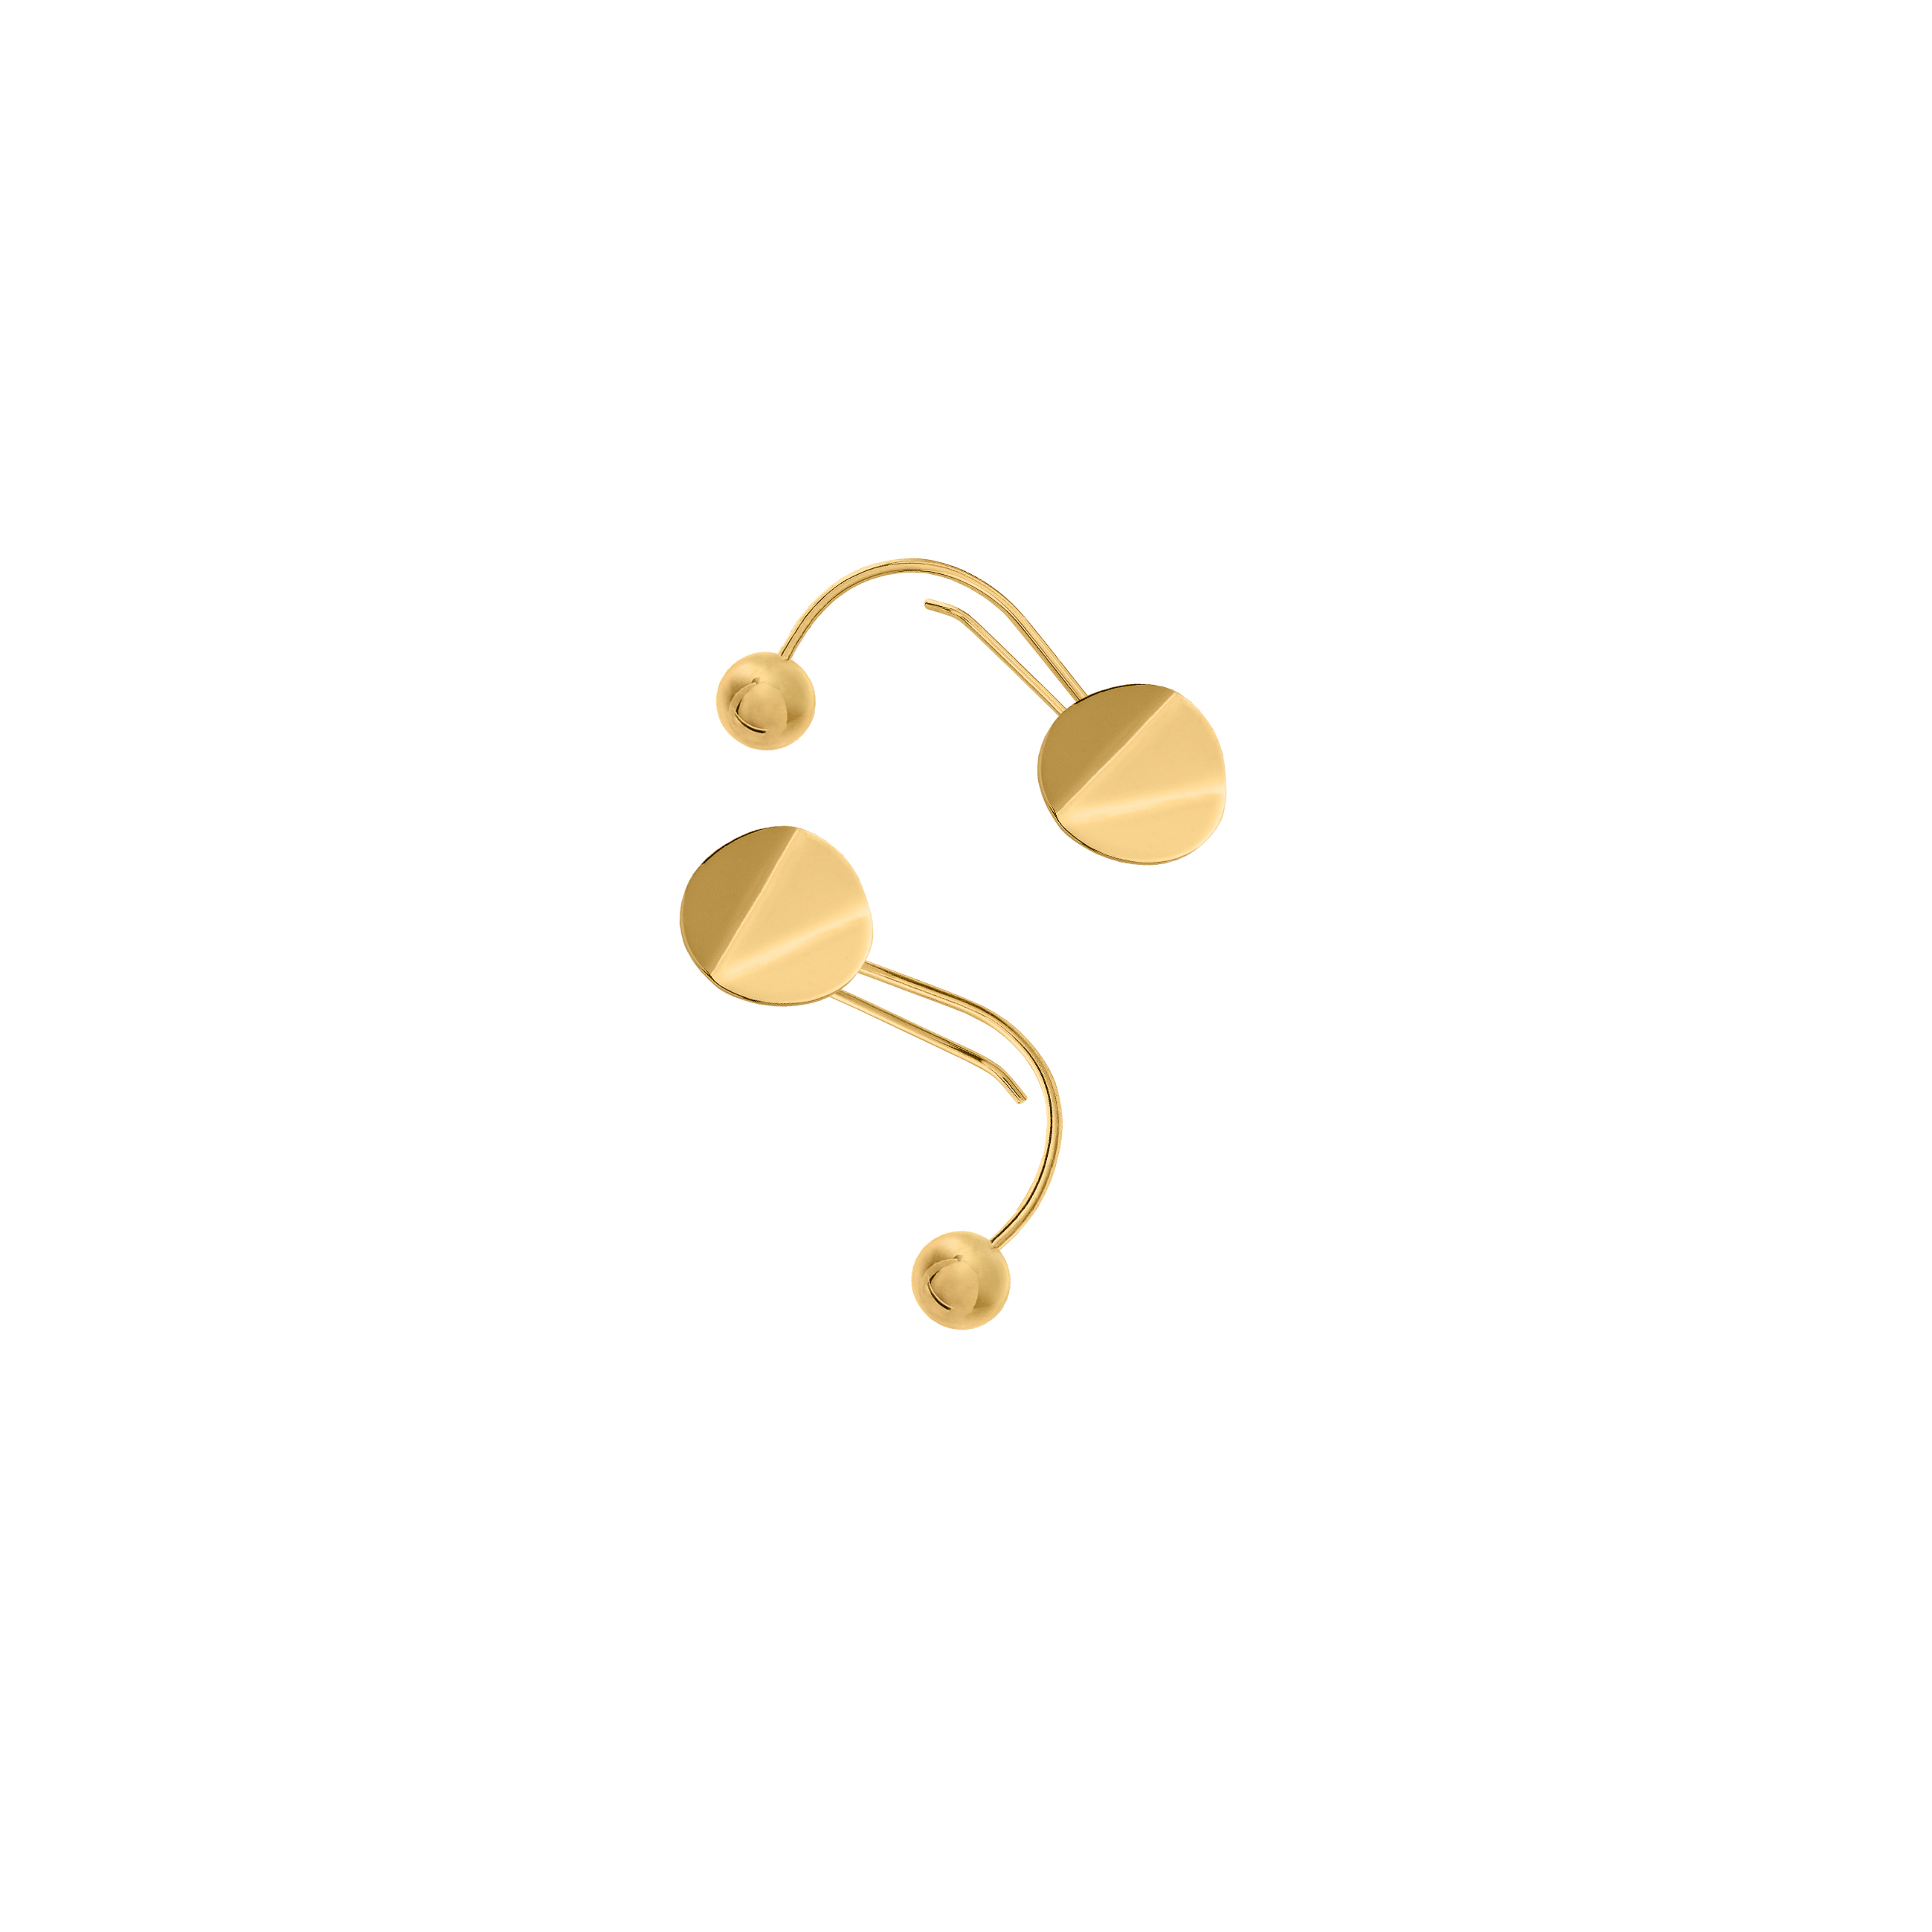 MOBILE GOLD- EARRING